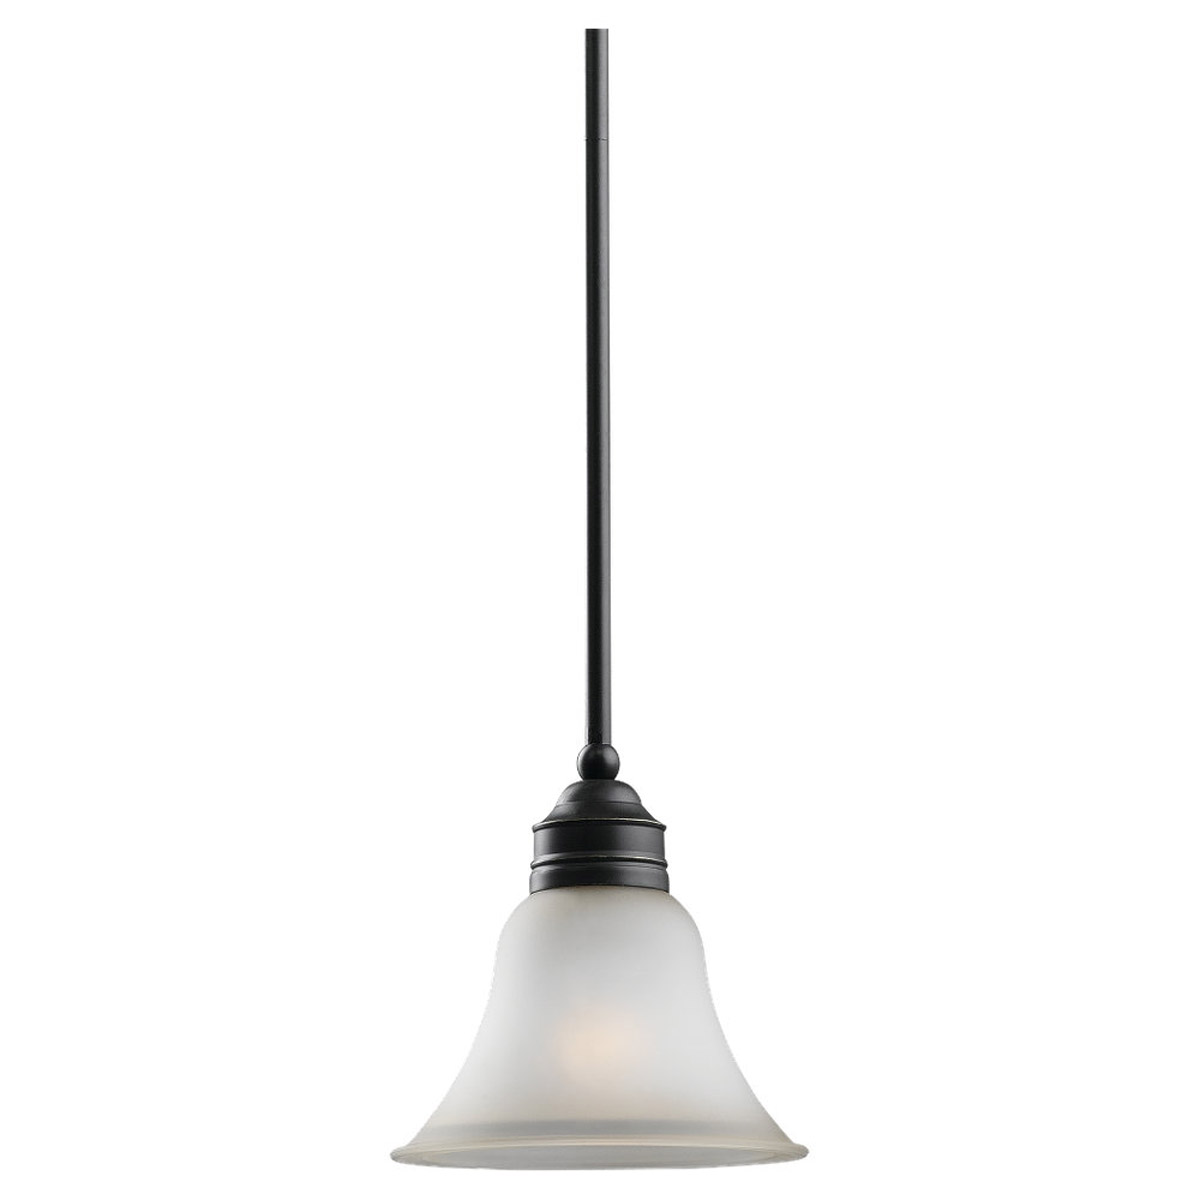 Sea Gull Lighting Gladstone 1 Light Mini Pendant in Heirloom Bronze 61850-782 photo